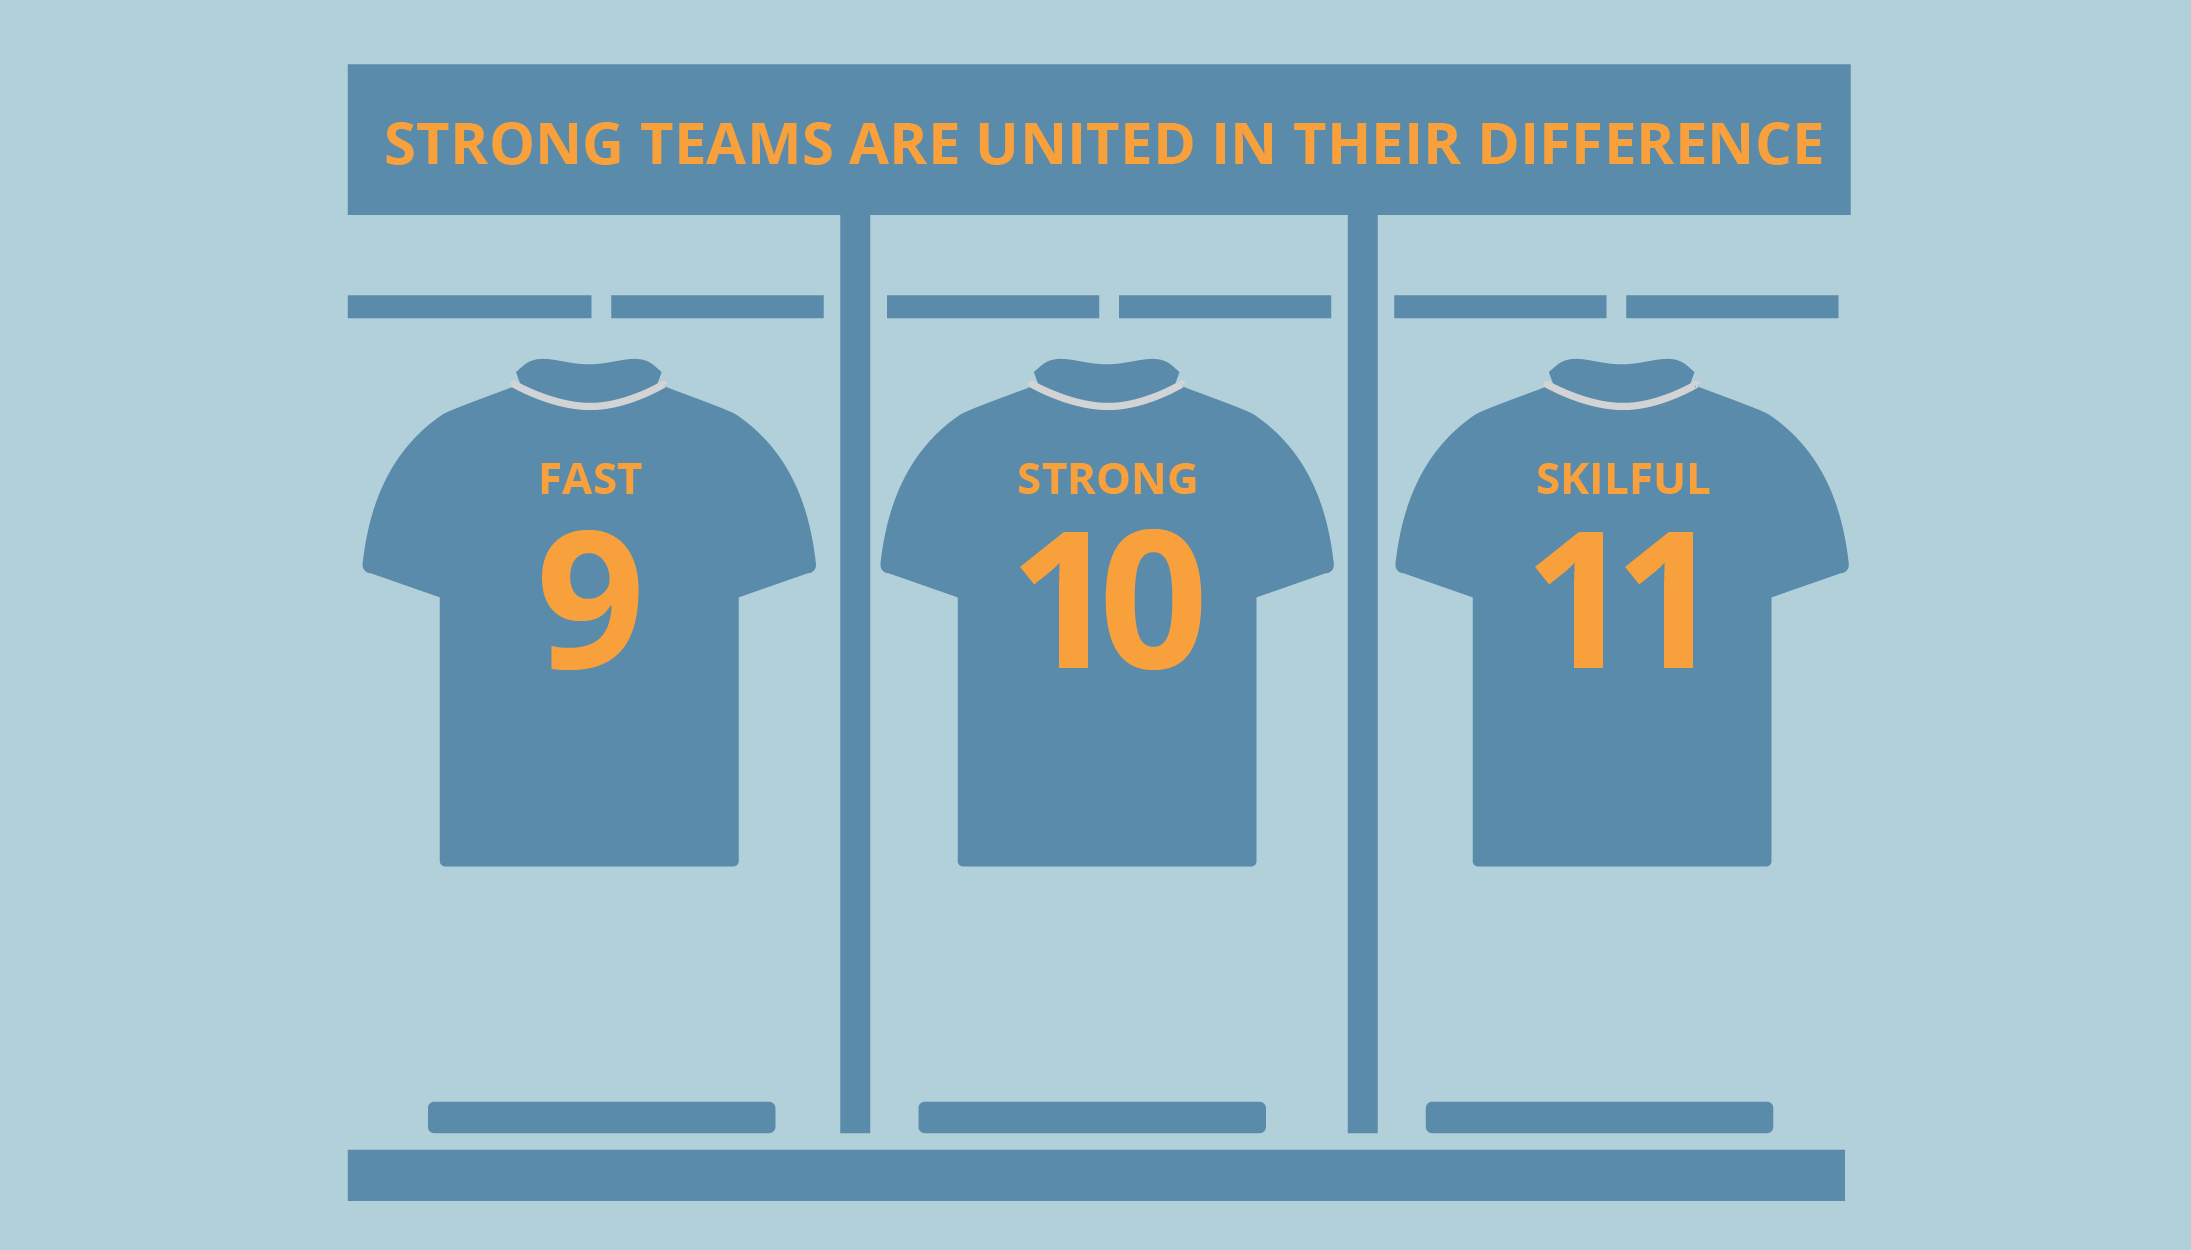 STRONG TEAMS ARE UNITED in THEIR DIFFERENCE